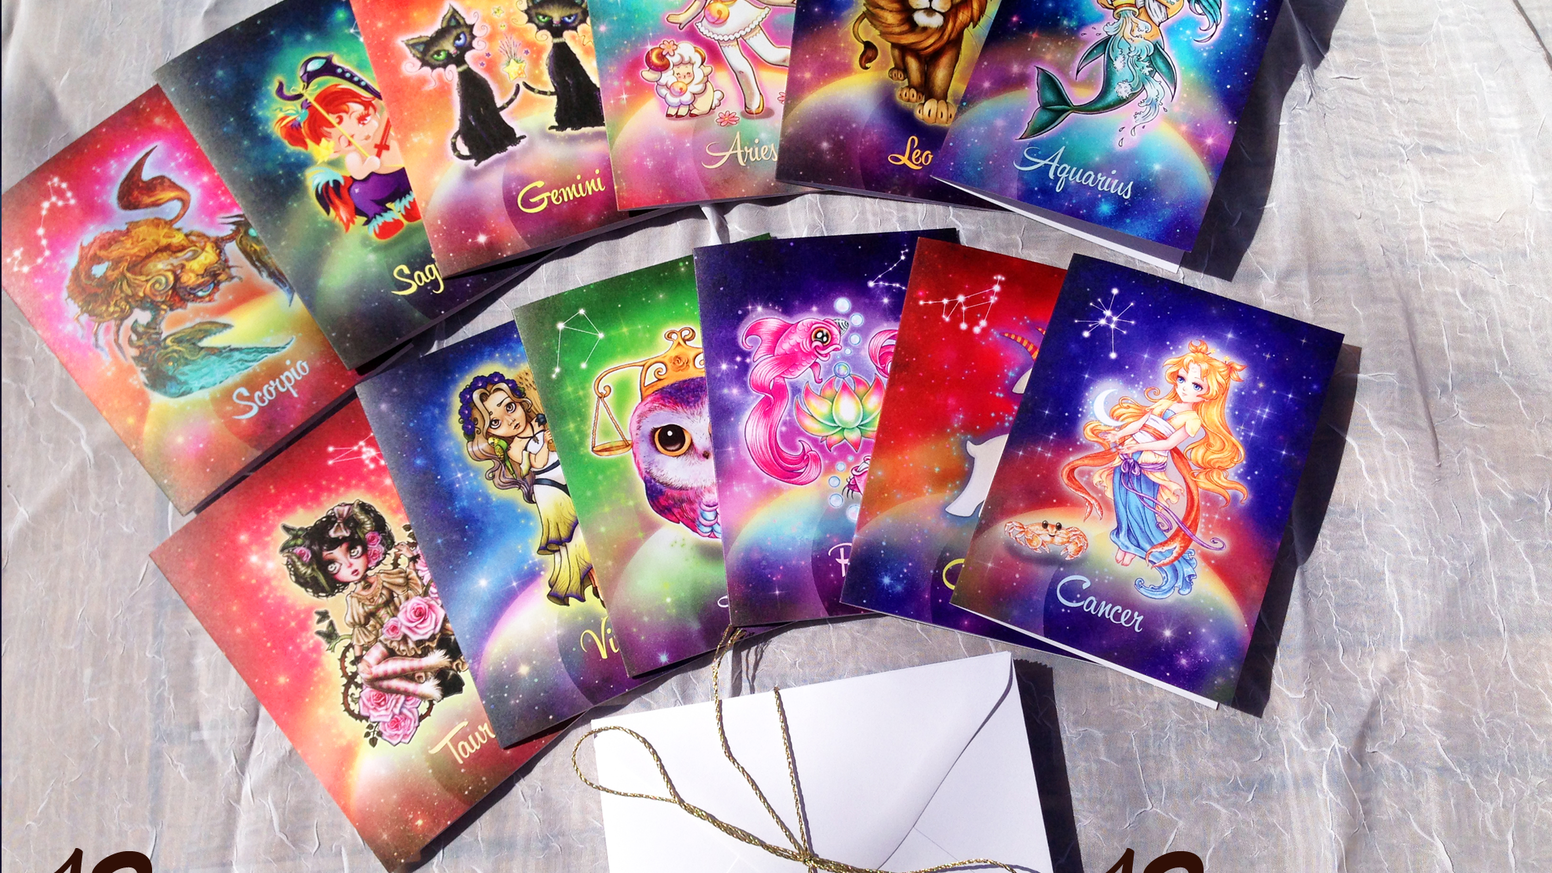 Zodiac greeting card set by 12 different artists by kayti welsh 12 talented artists gathered to create an adorable and sparkly set of zodiac greeting cards m4hsunfo